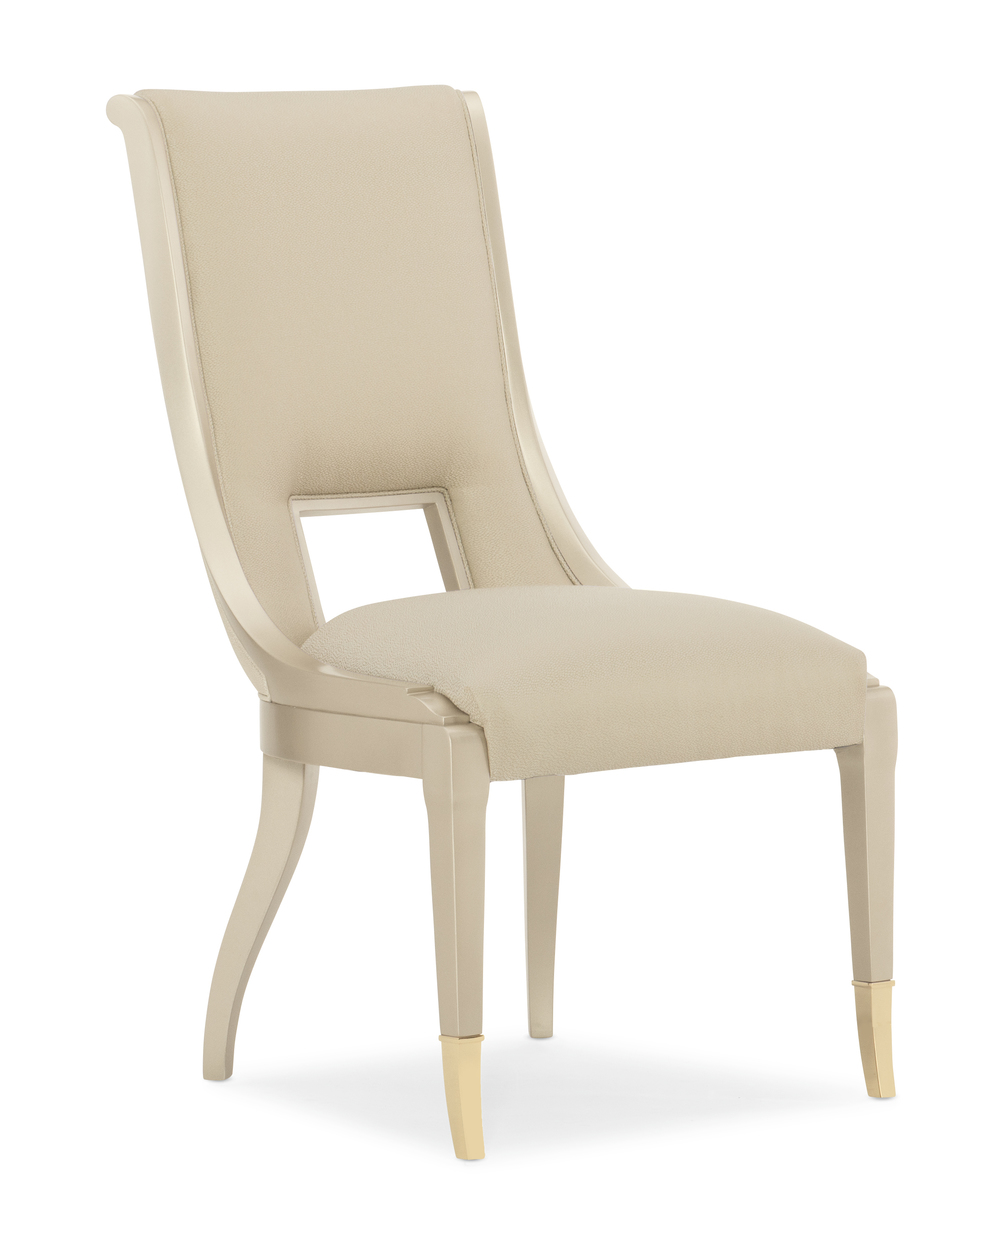 Caracole - In Good Taste Dining Chair